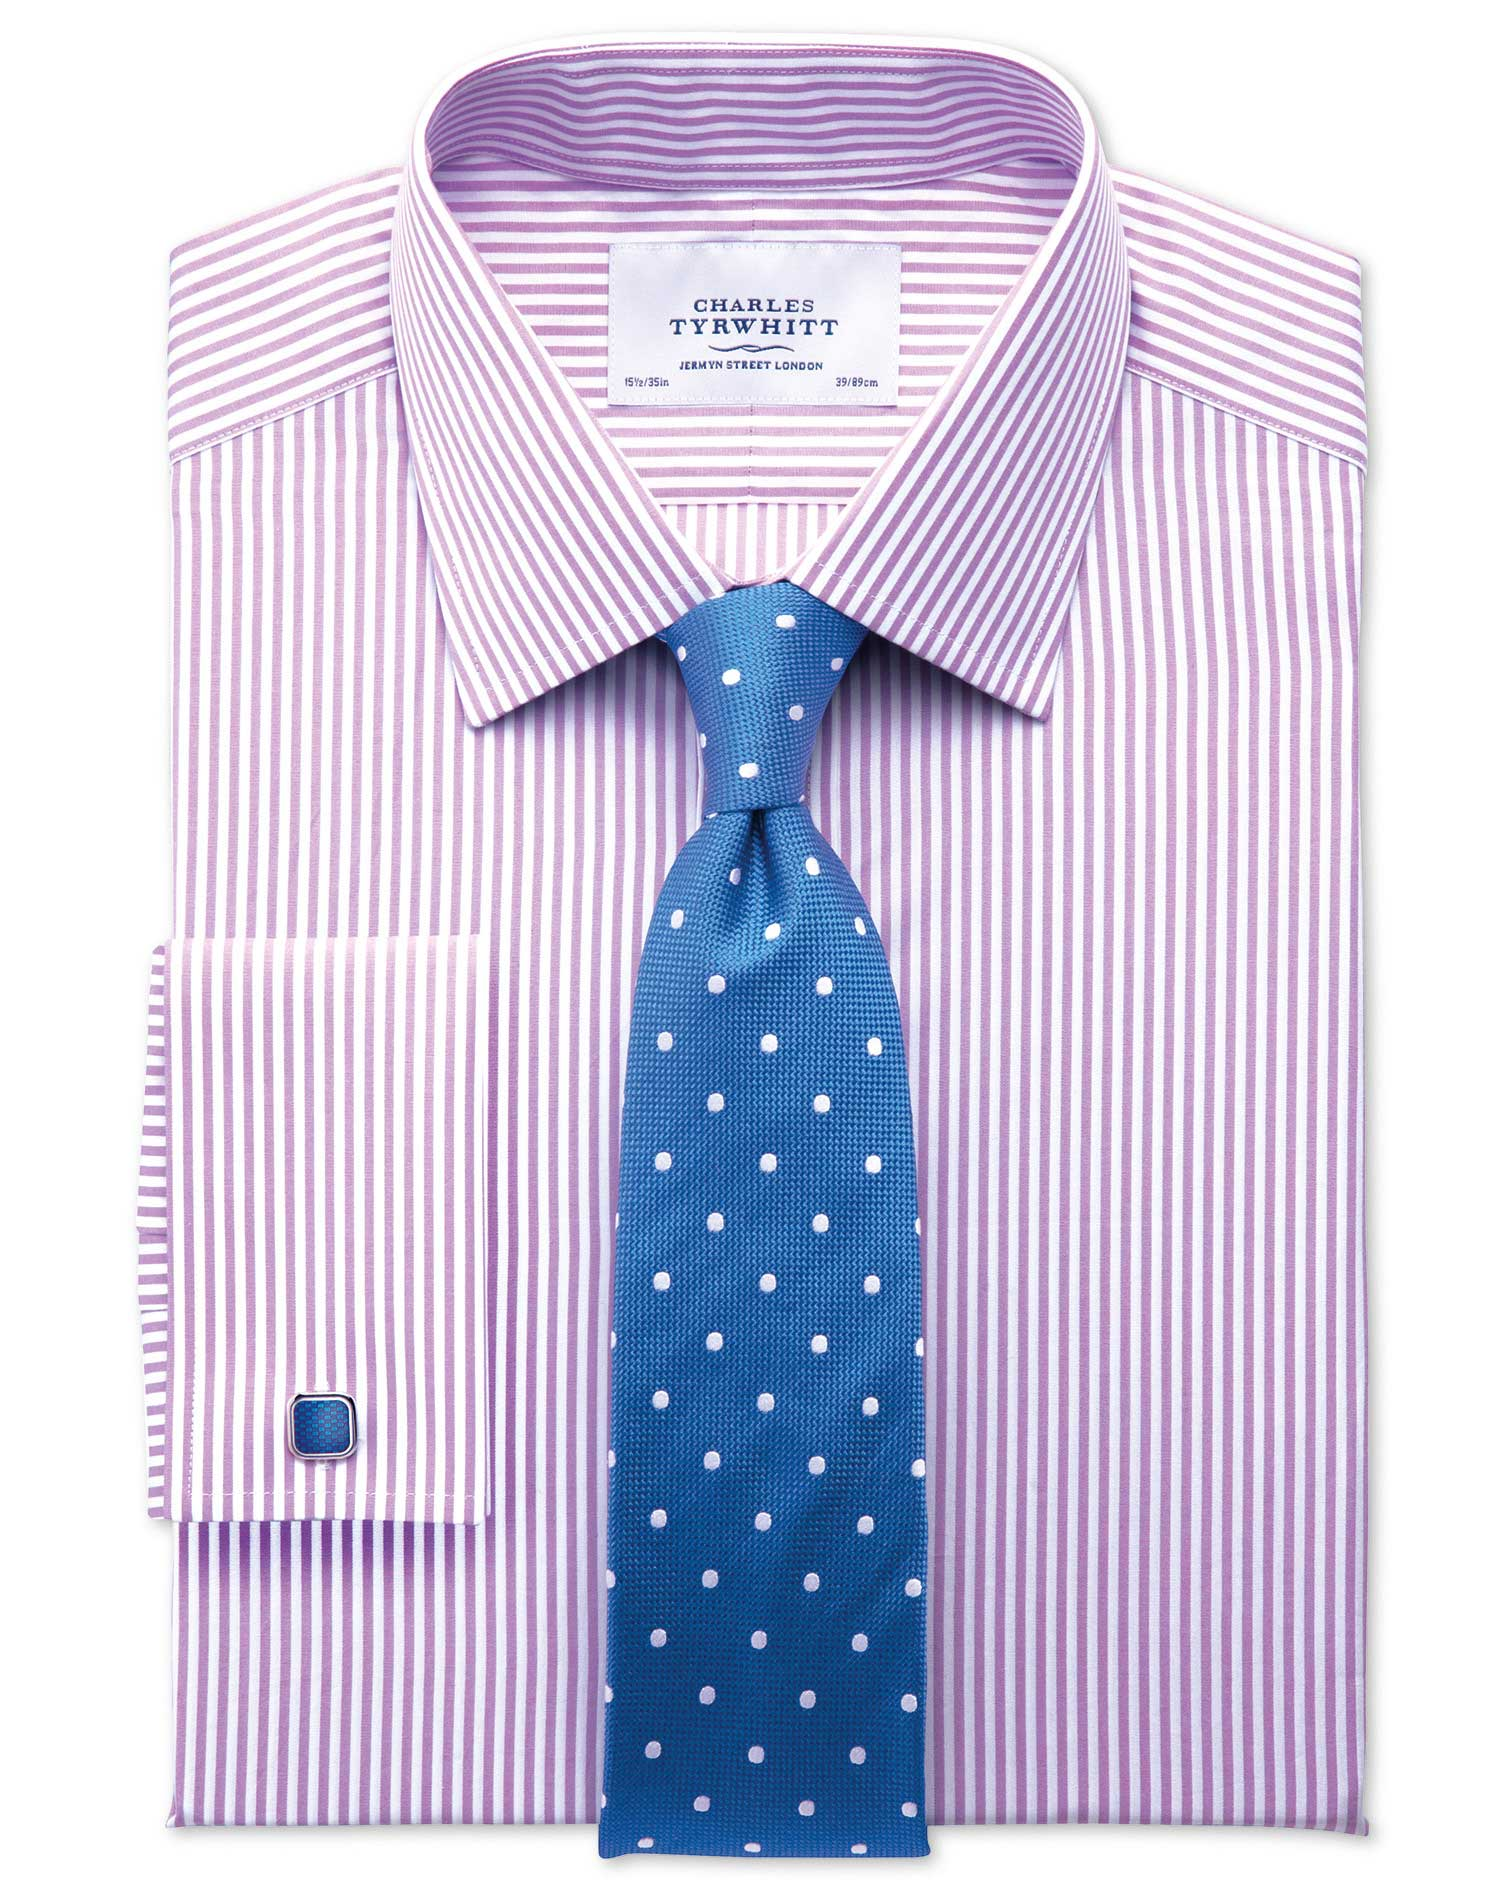 Classic Fit Bengal Stripe Lilac Cotton Formal Shirt Single Cuff Size 17.5/34 by Charles Tyrwhitt